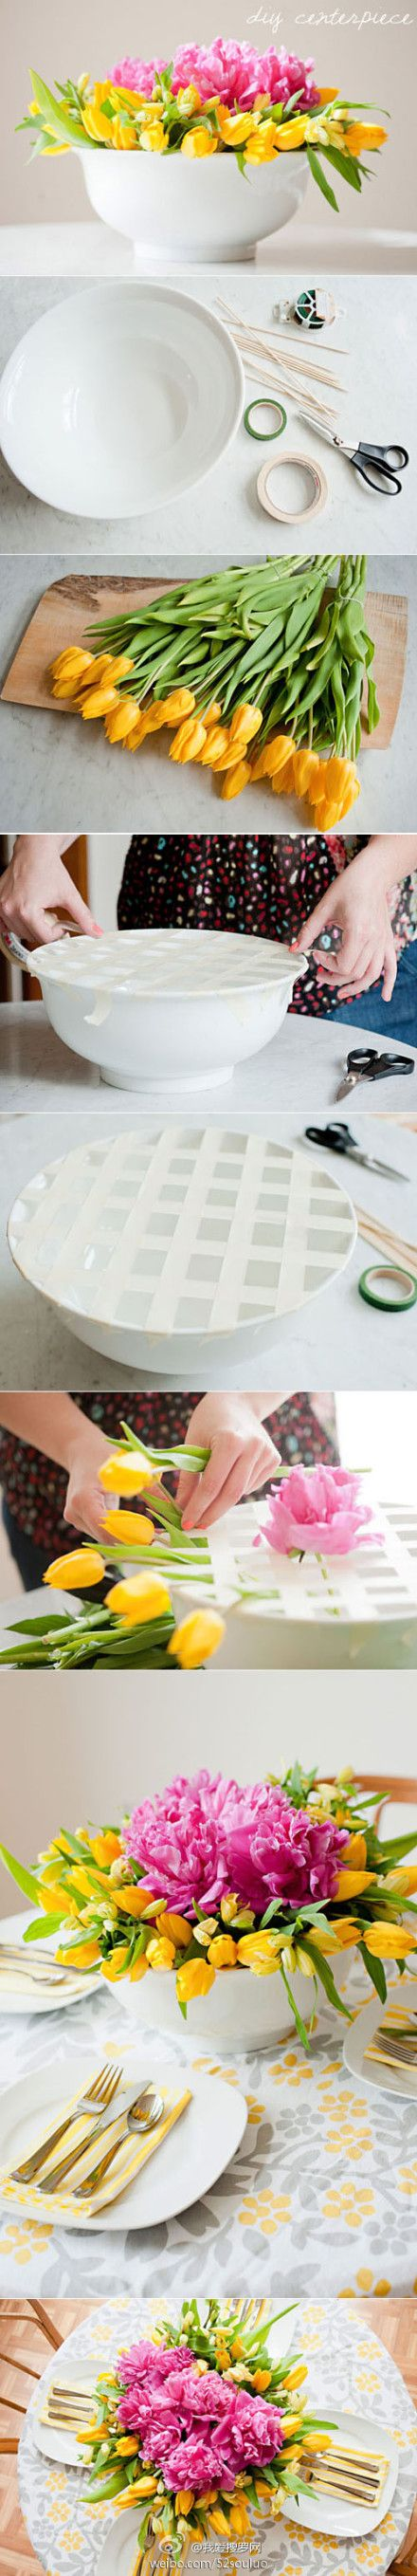 use tape to put together the perfect flower arrangement to use as a centerpiece